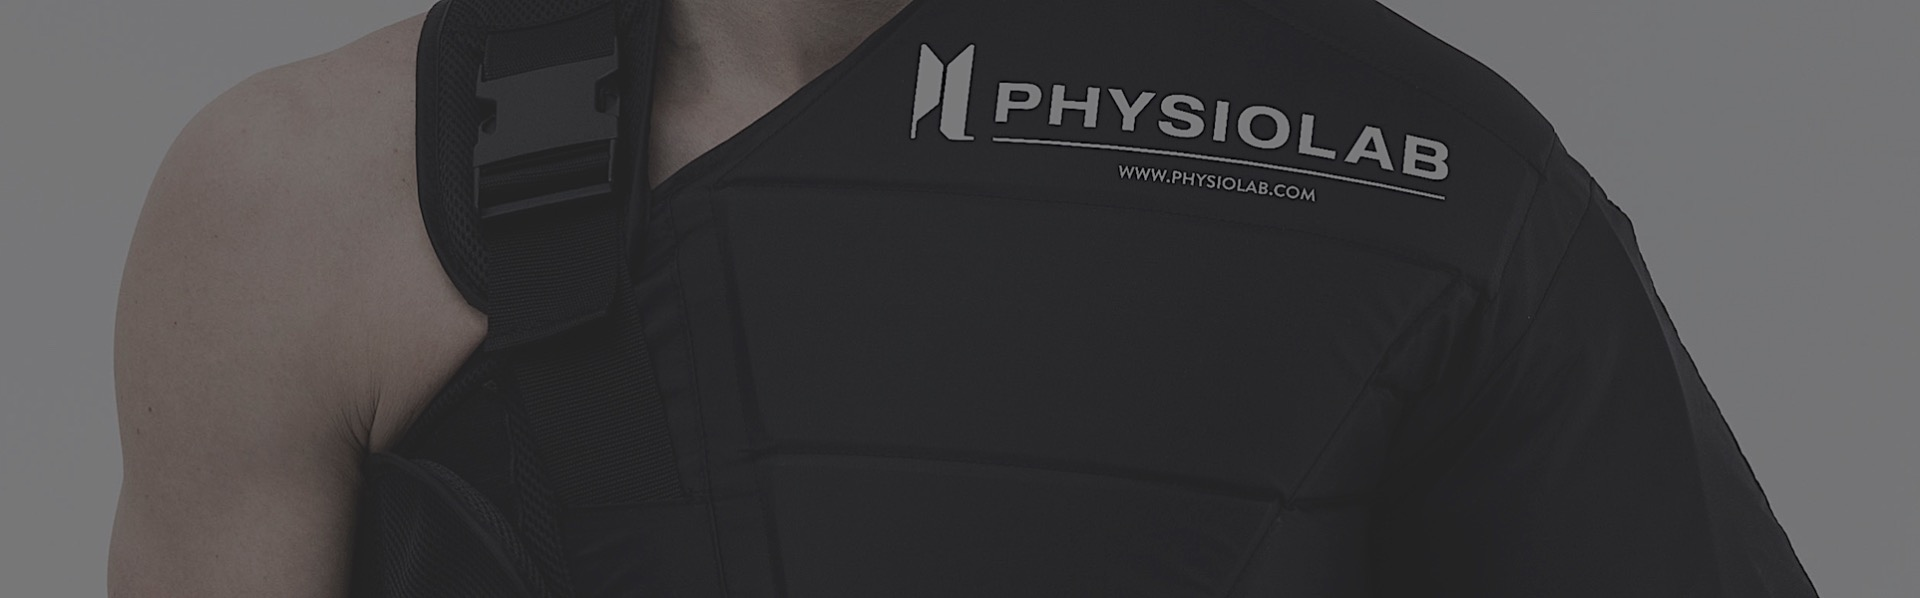 Physiolab Therapy Packs